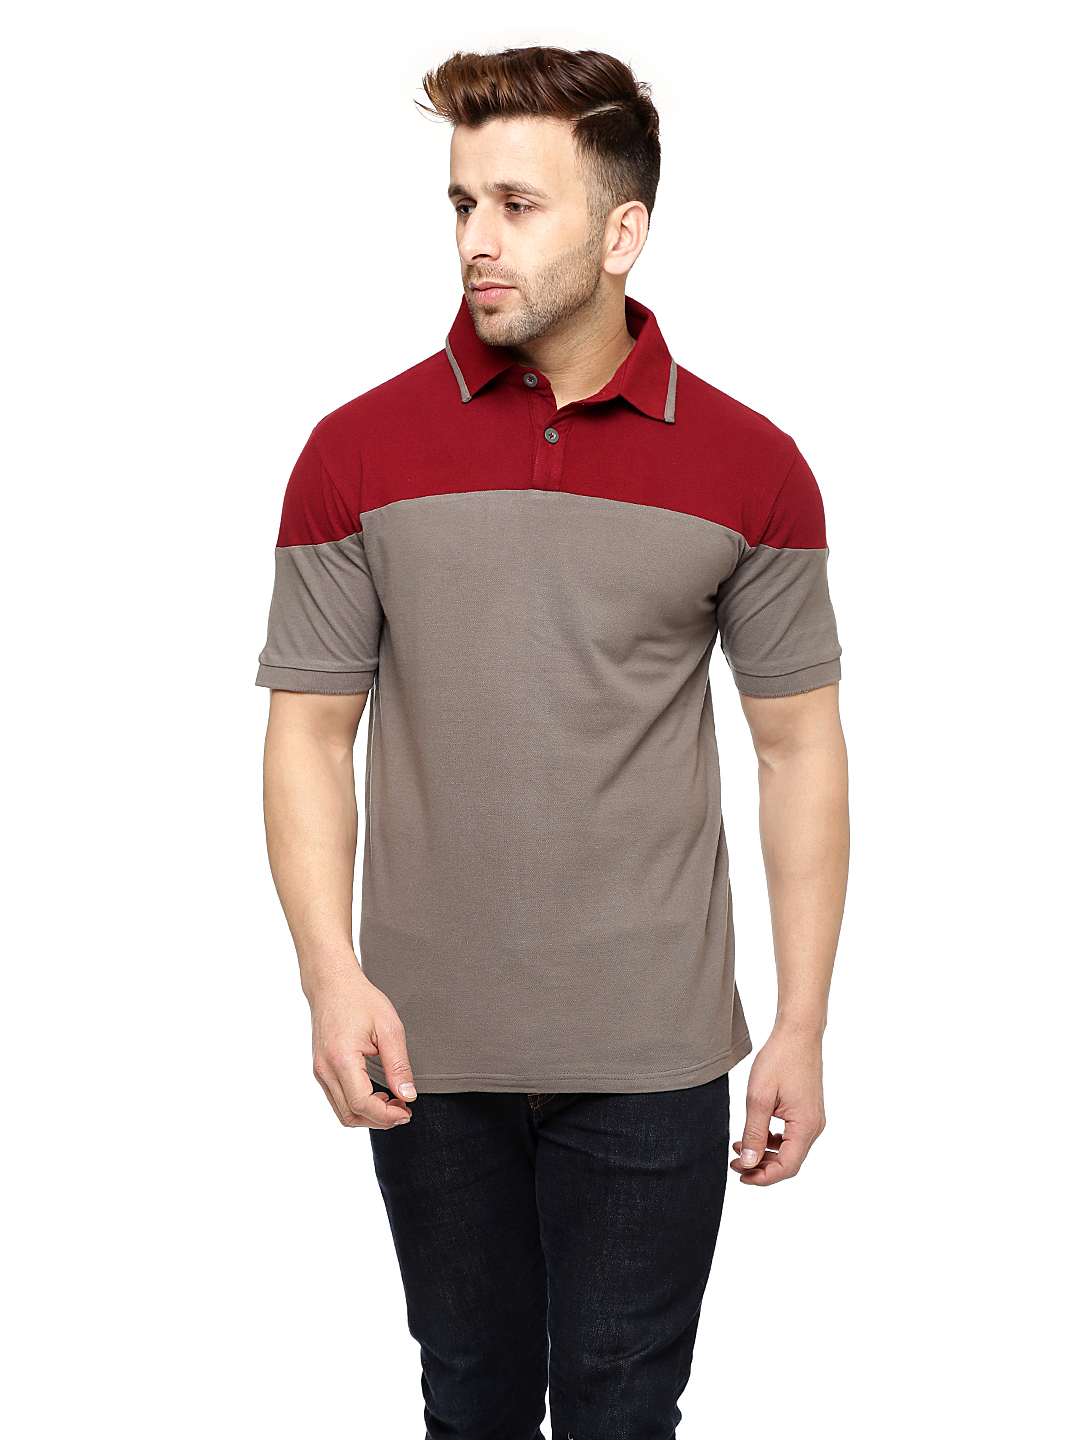 Gritstones Maroon/Steel Grey Half Sleeves Cotton Polo T-Shirt